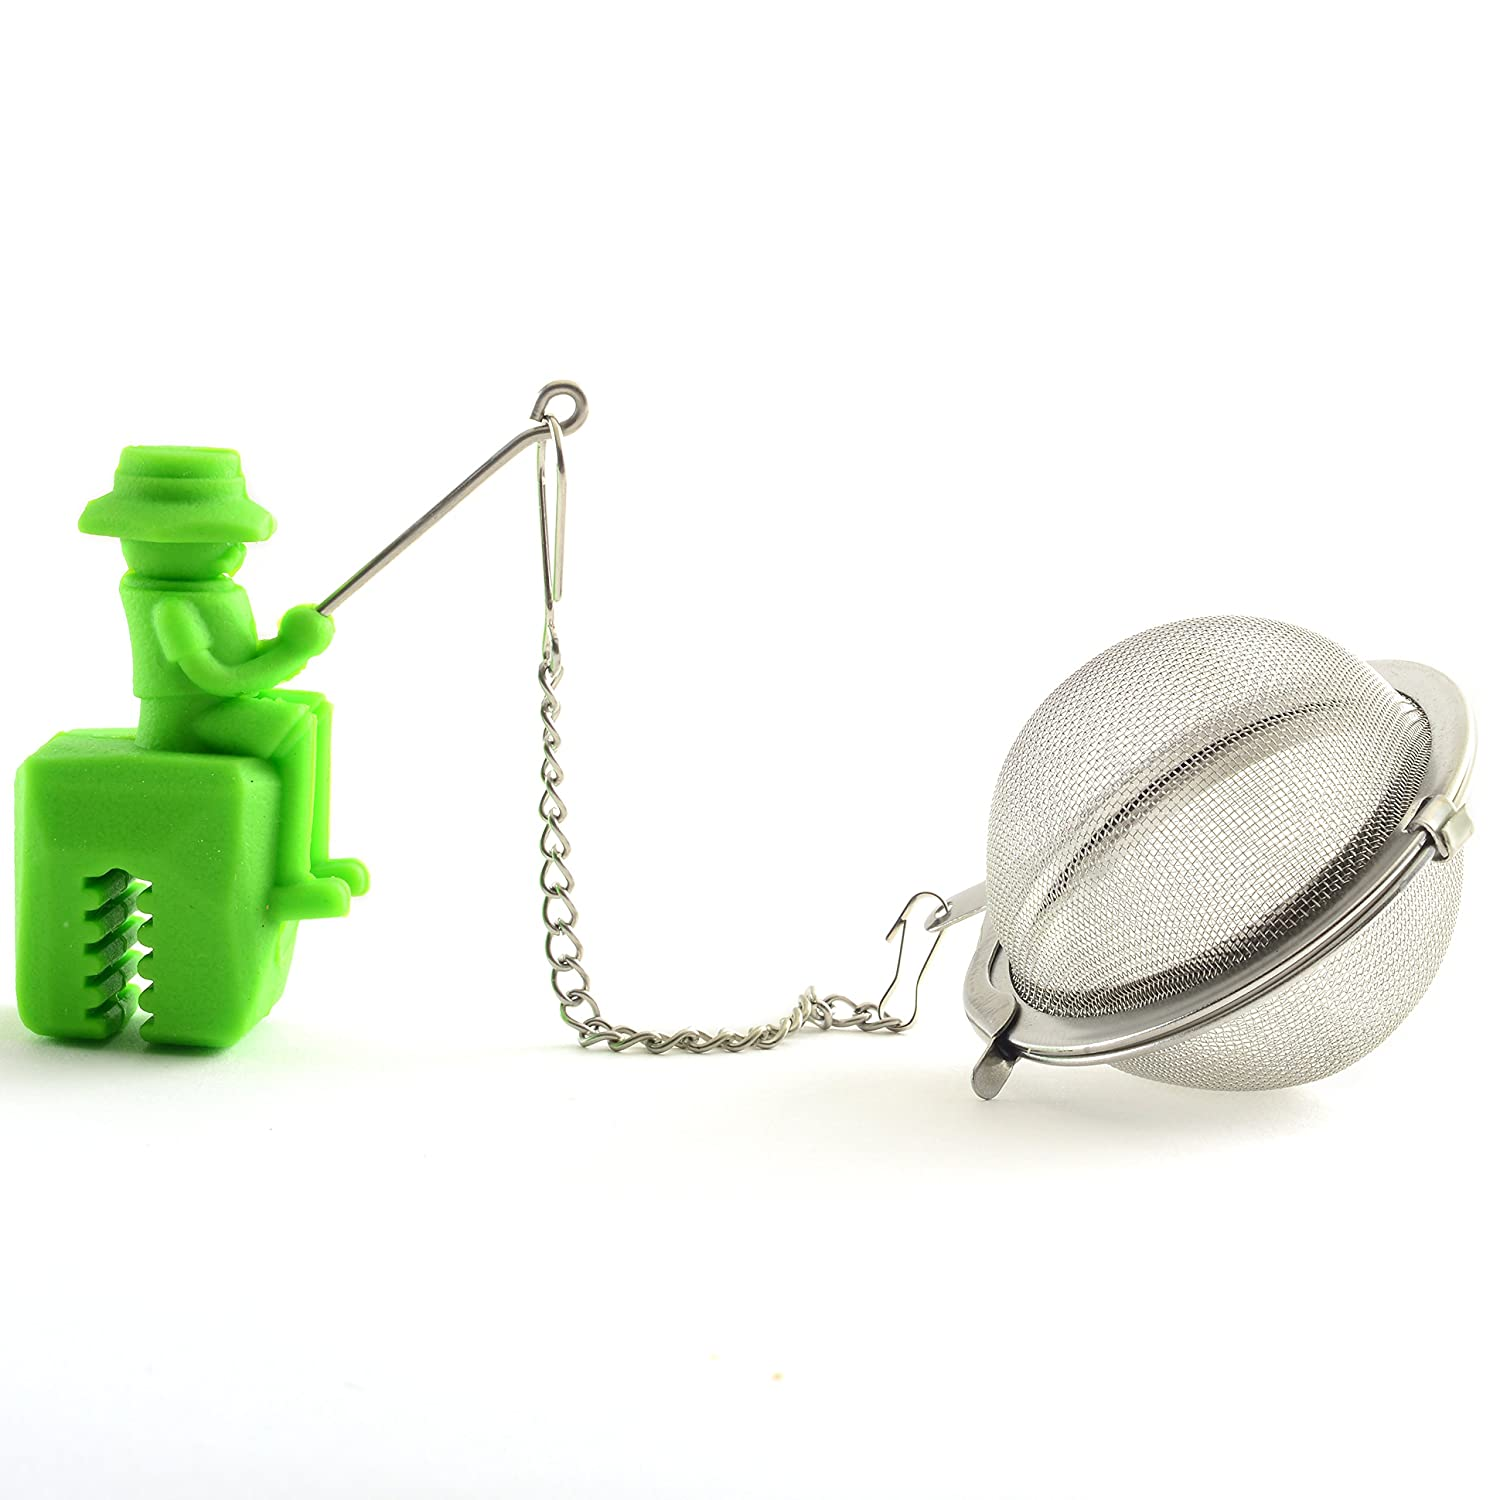 Norpro 5649 Stainless Steel and Silicone Fisherman Tea Infuser green 2